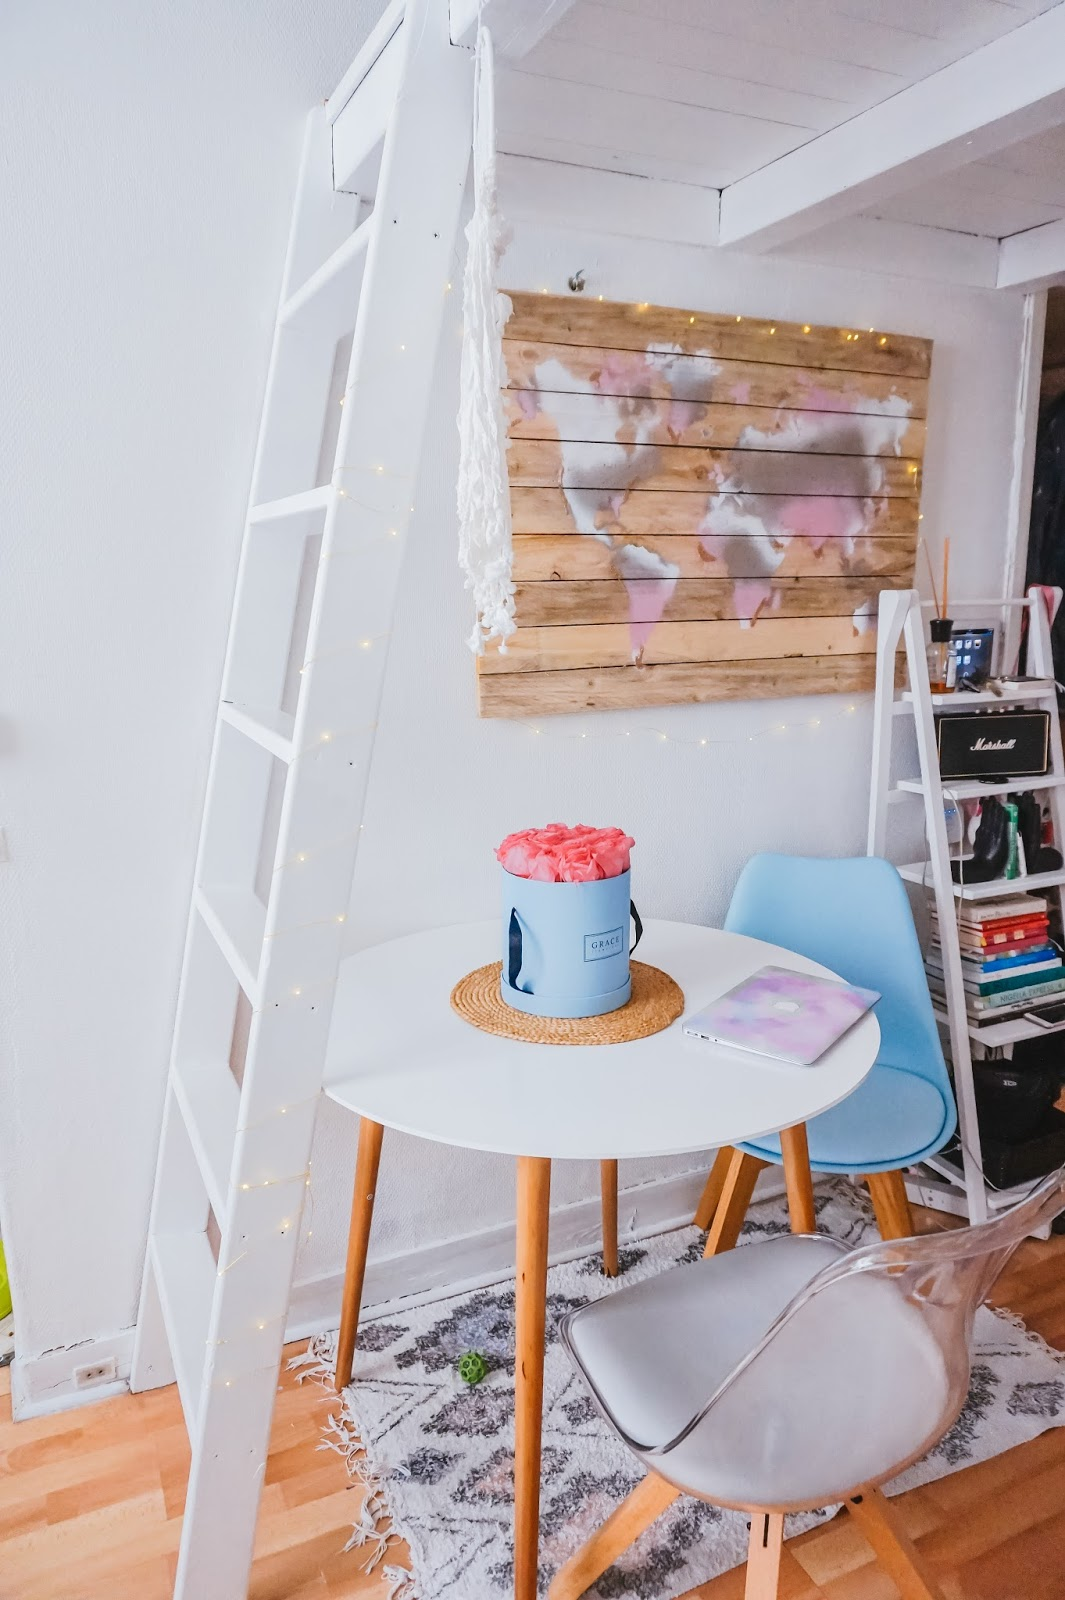 meetmeinparee-parisapapartments-paris-smallapartments-decorinspo